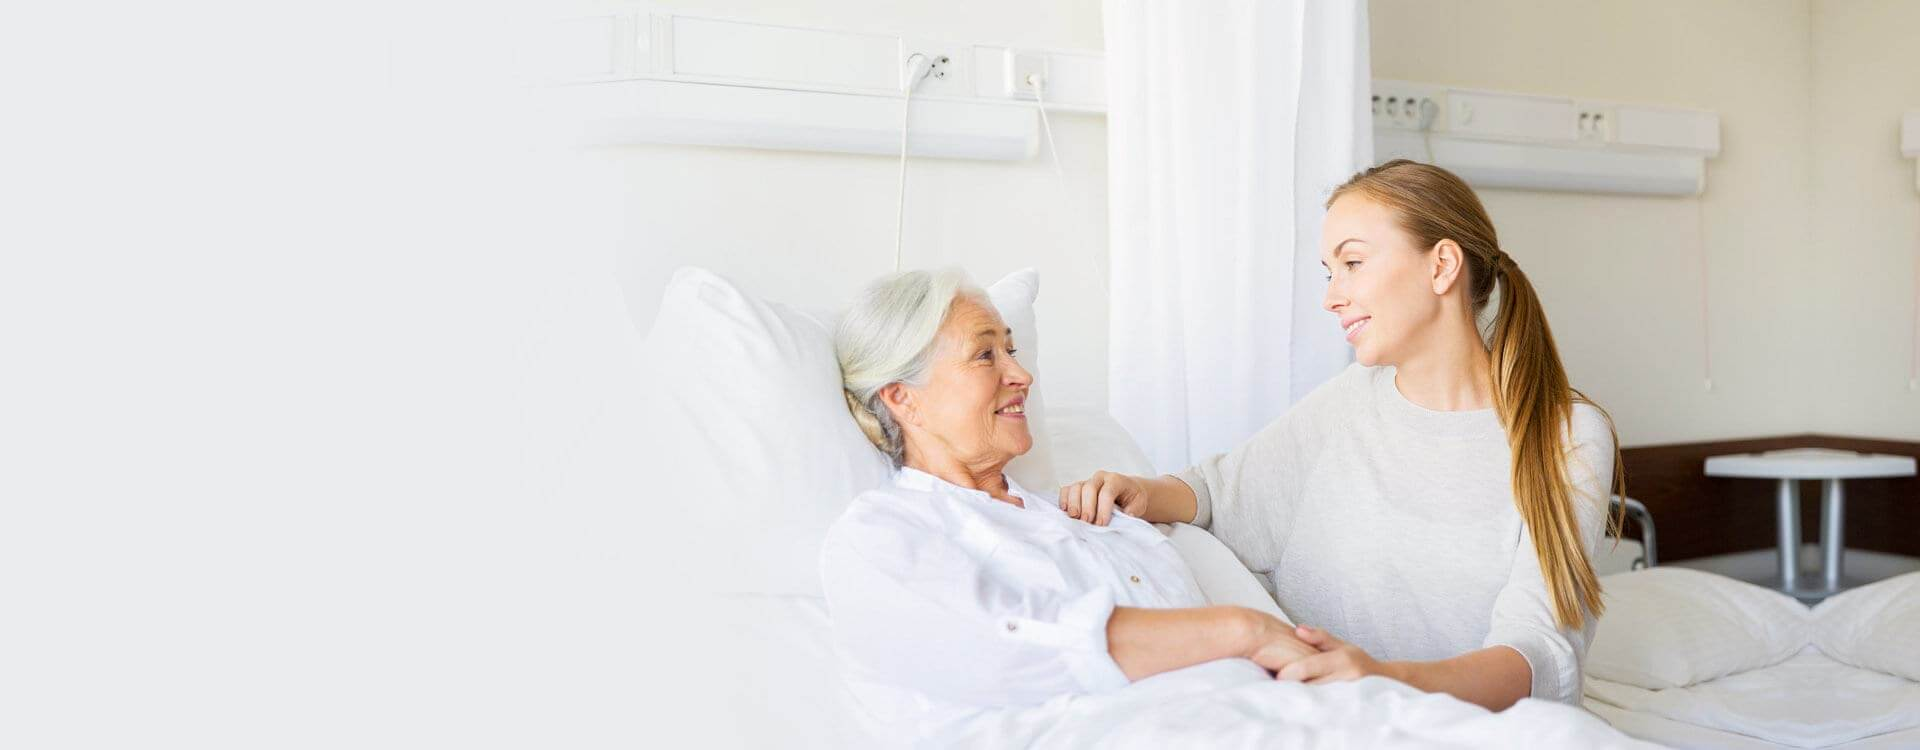 lady and patient smiling at each other